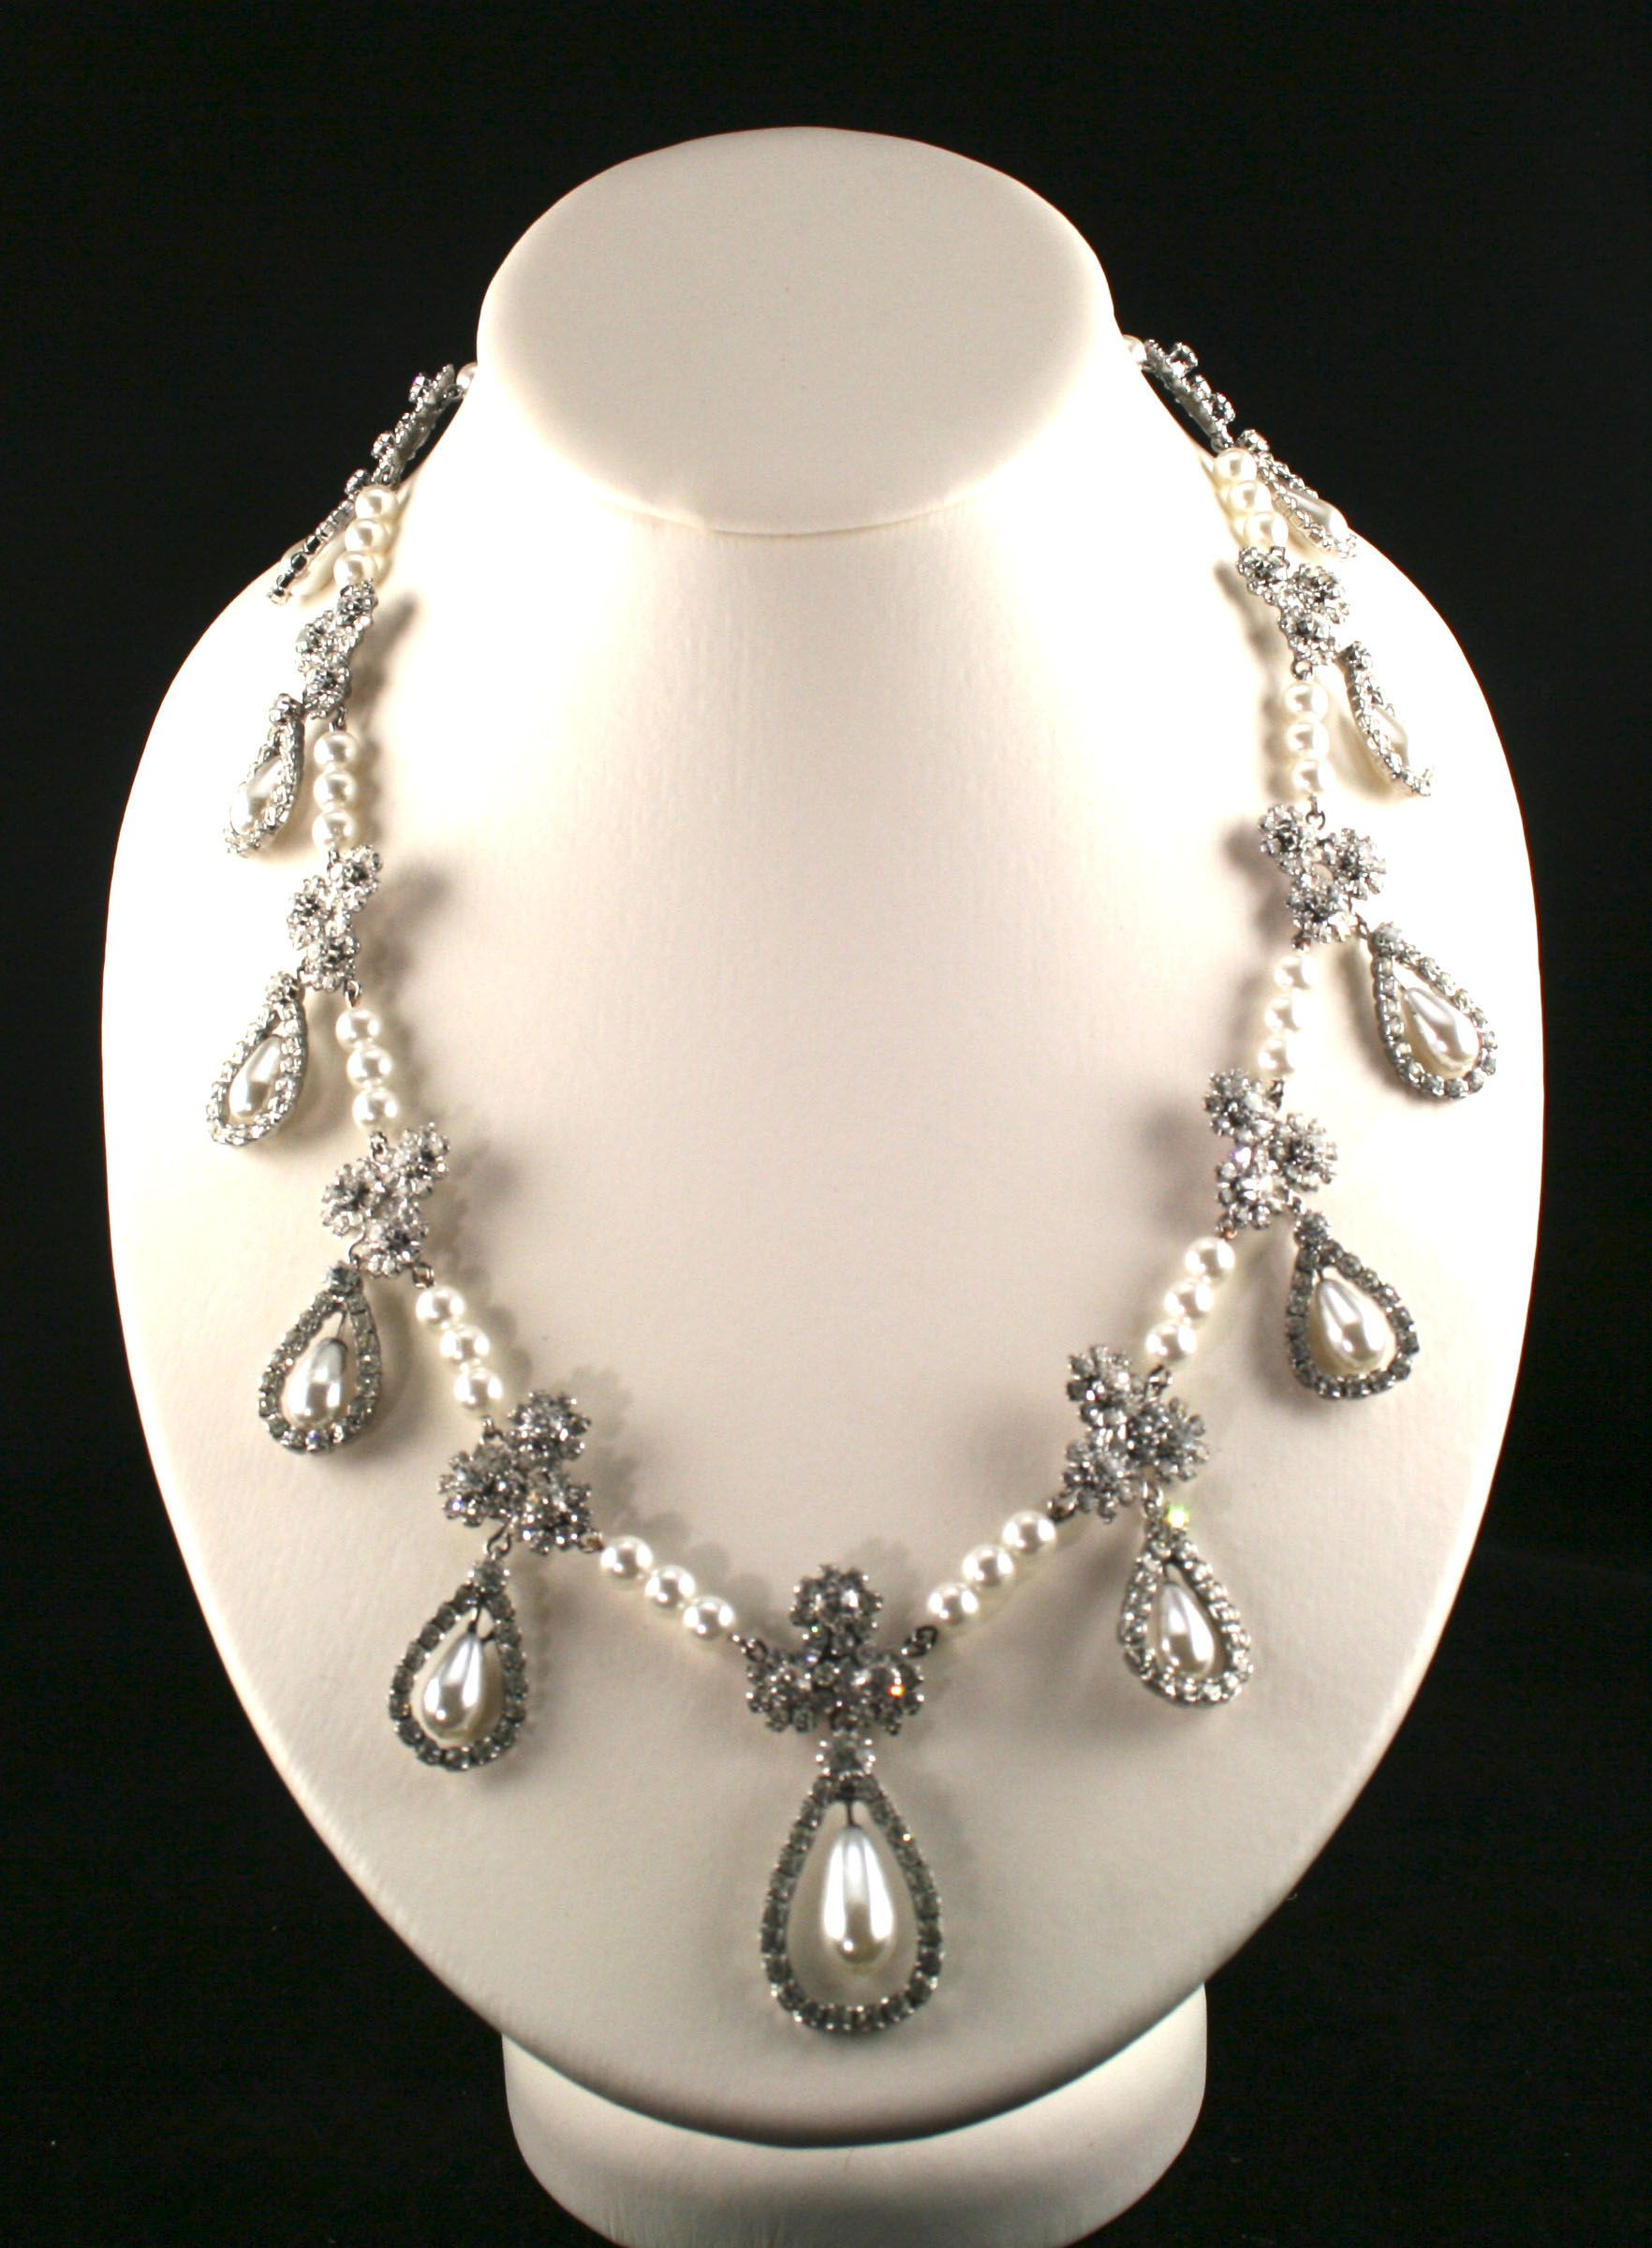 Romanov pearl and diamond necklace Jewels and Tiaras Pinterest